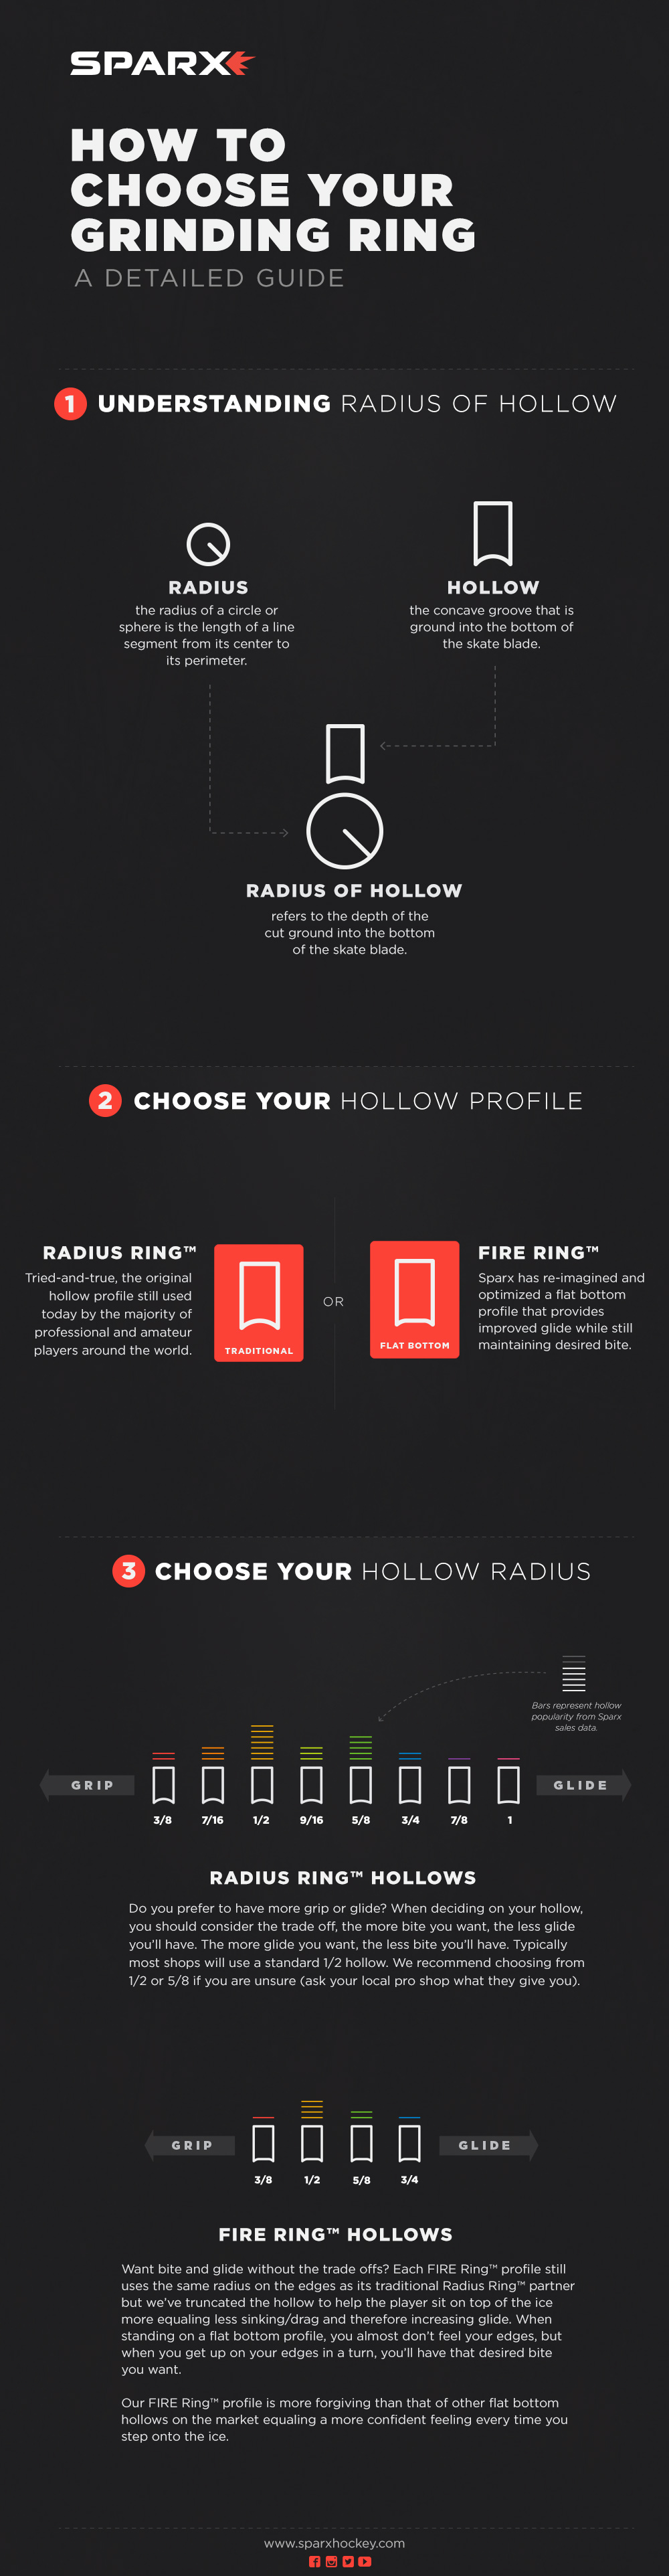 How To Choose Your Grinding Ring Infographic